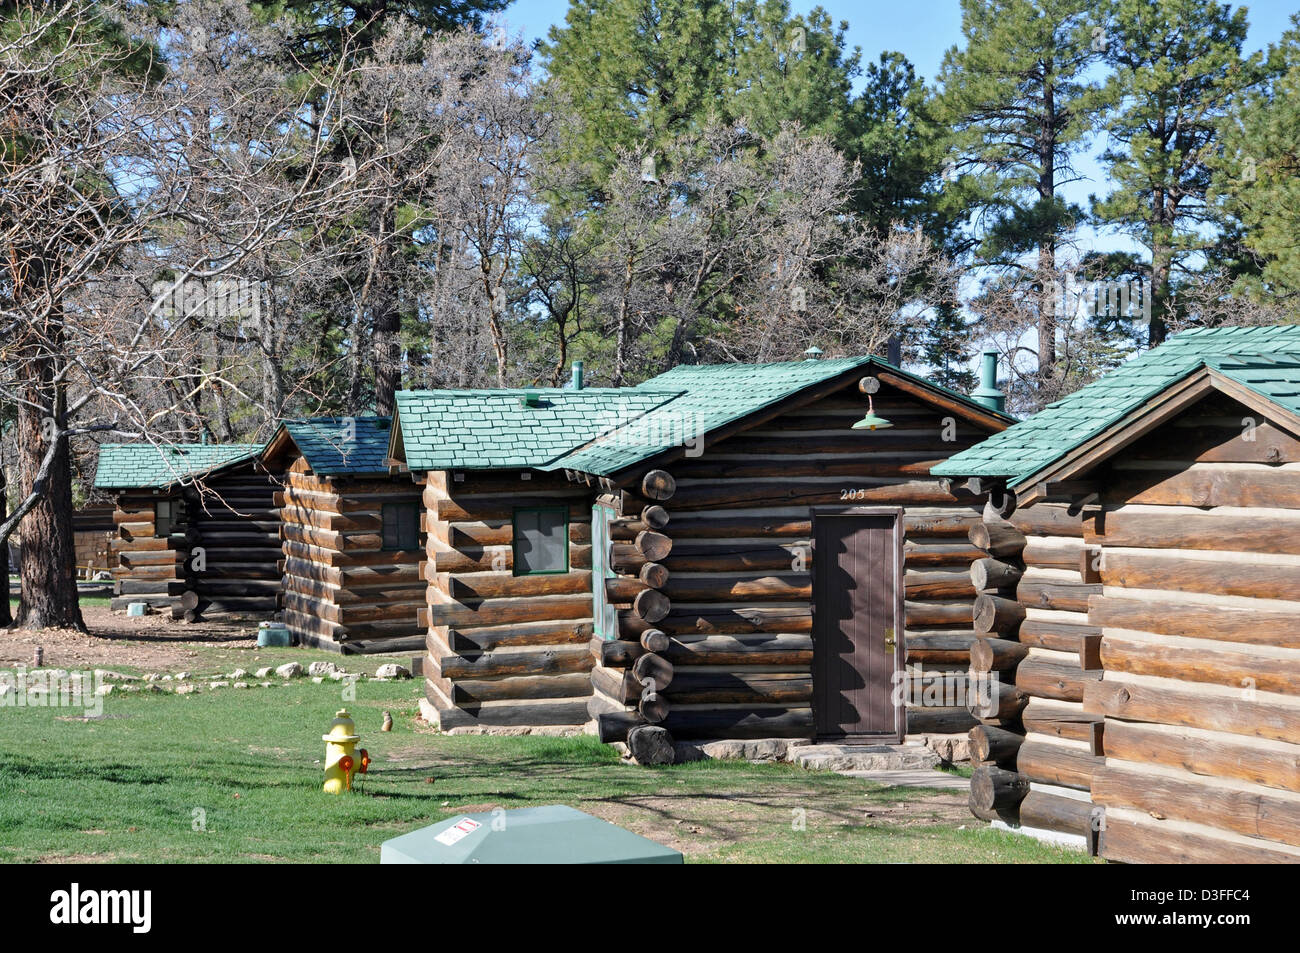 htm national u grand cabins park photo npgallery original media in canyon getasset download view s file service